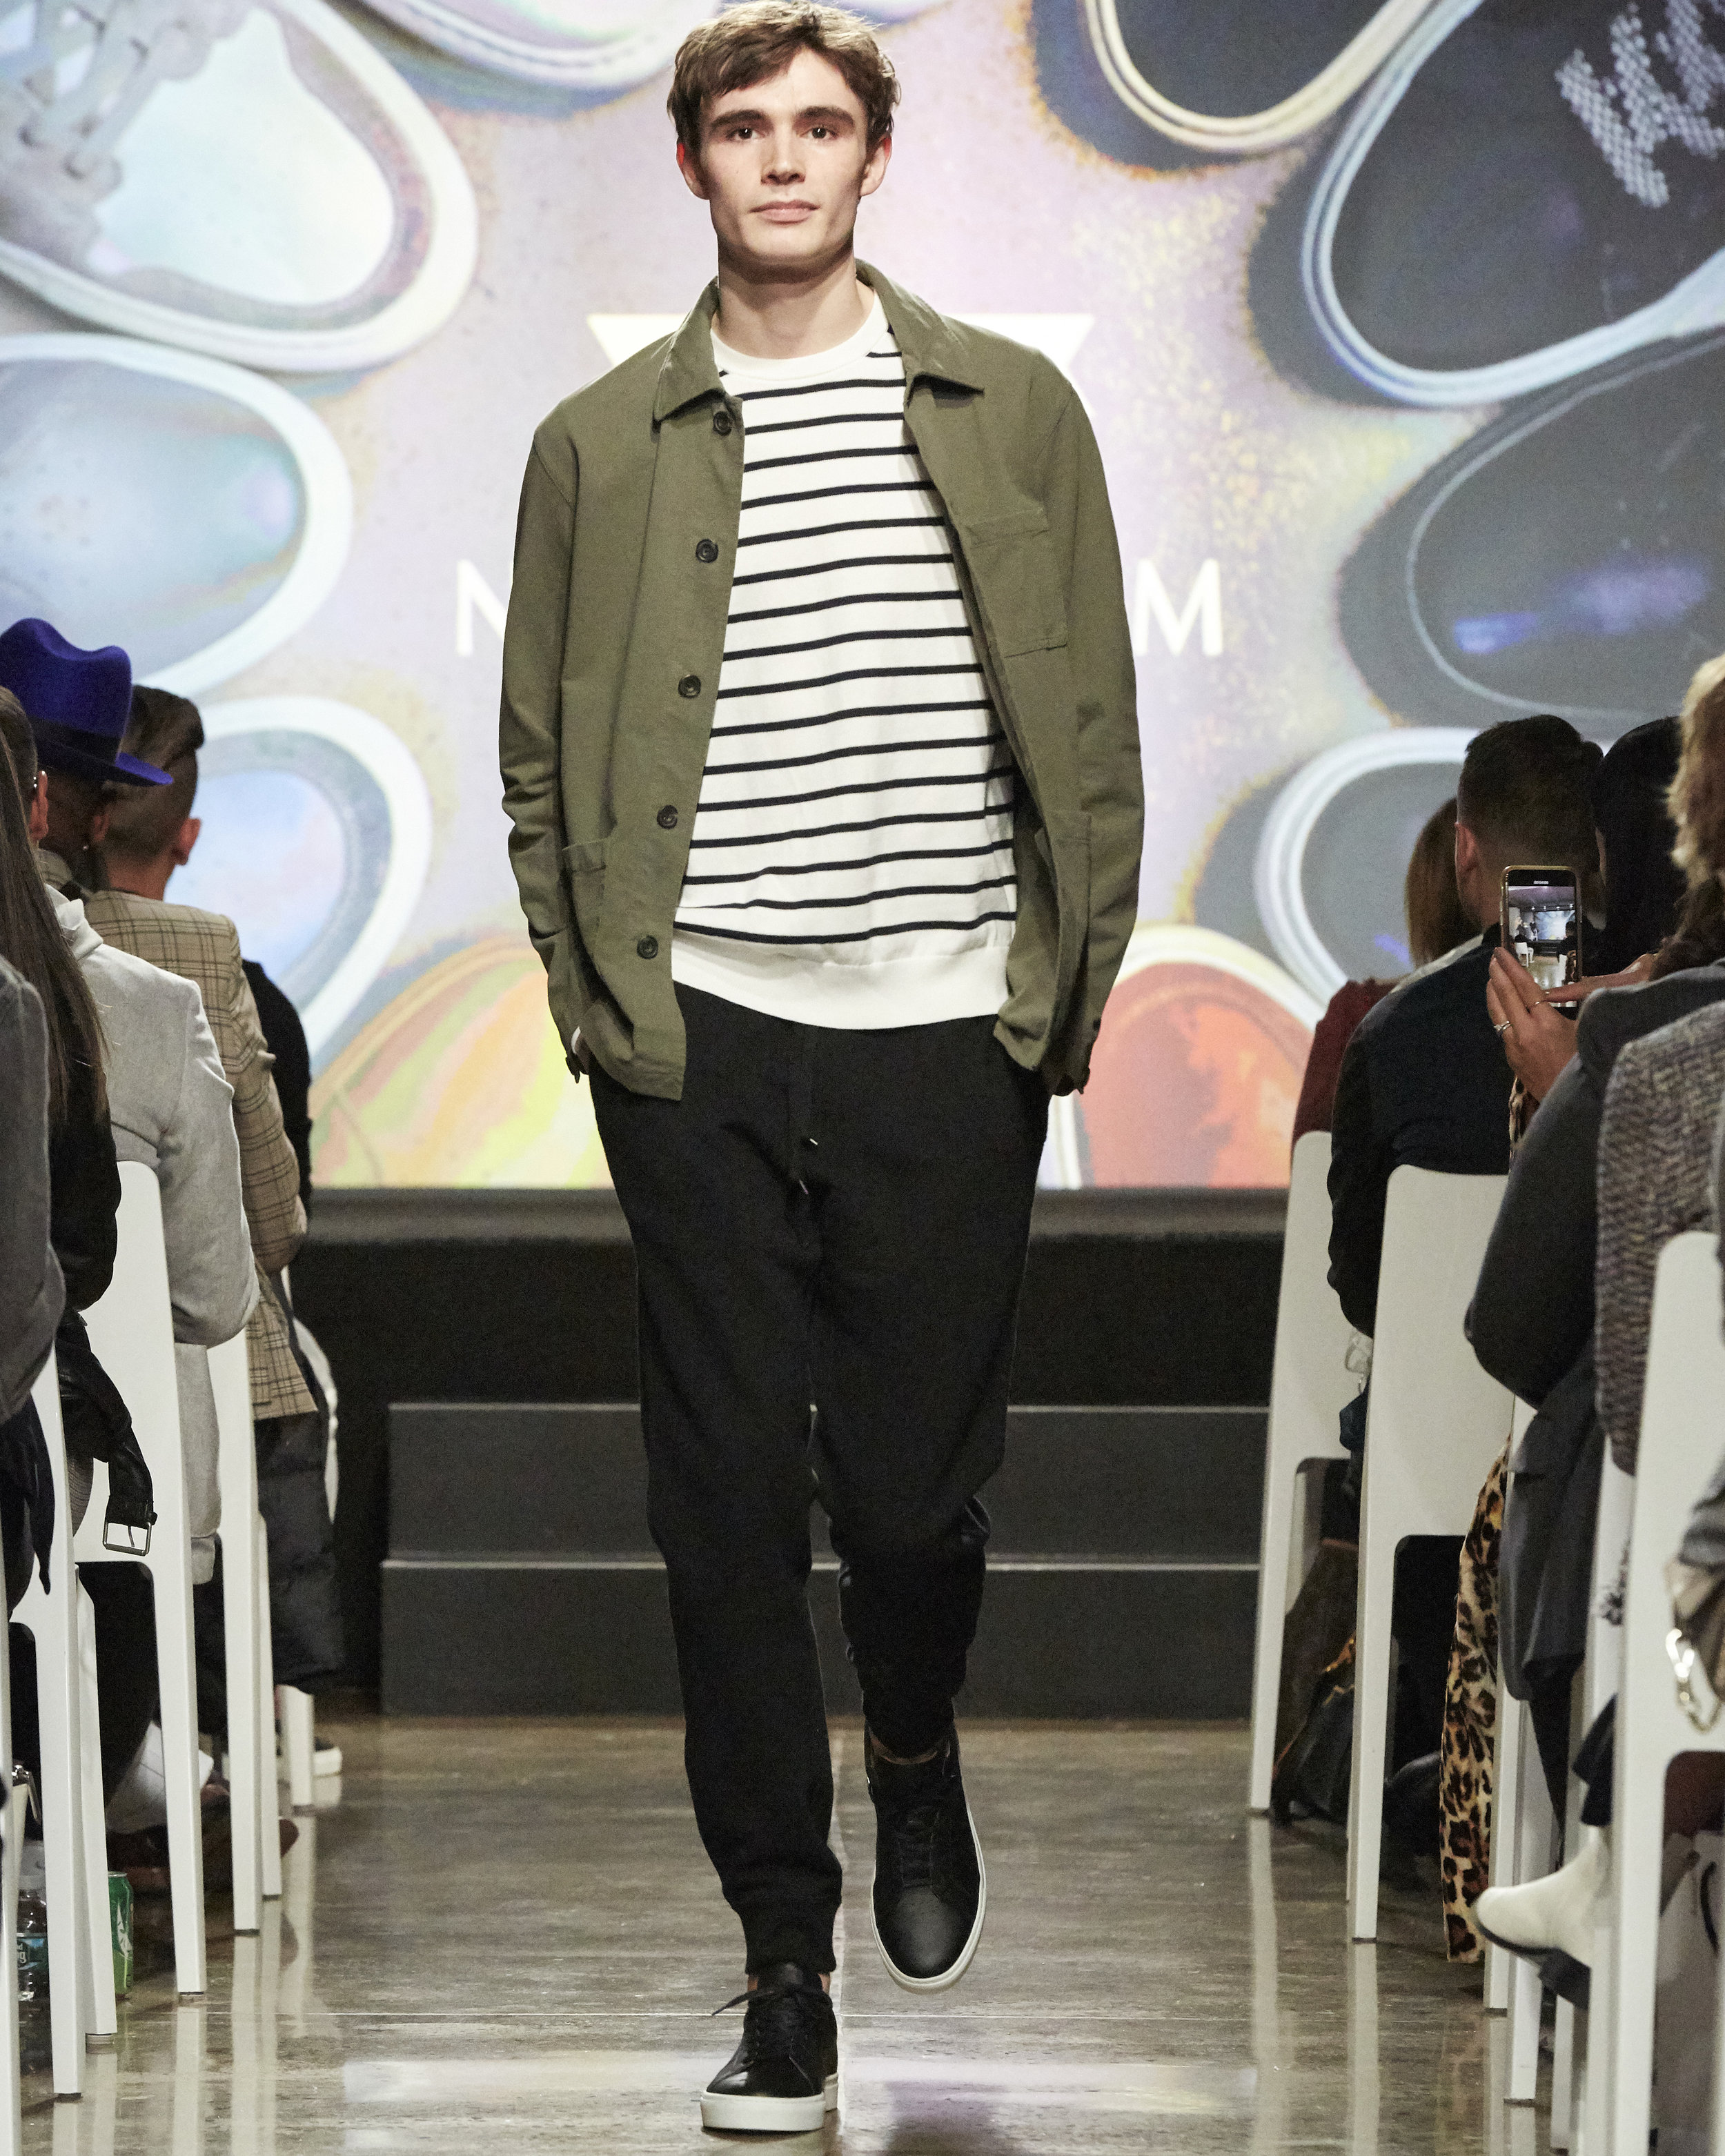 NLive_0319_004_Mens_Runway_GREATS_2154.jpg